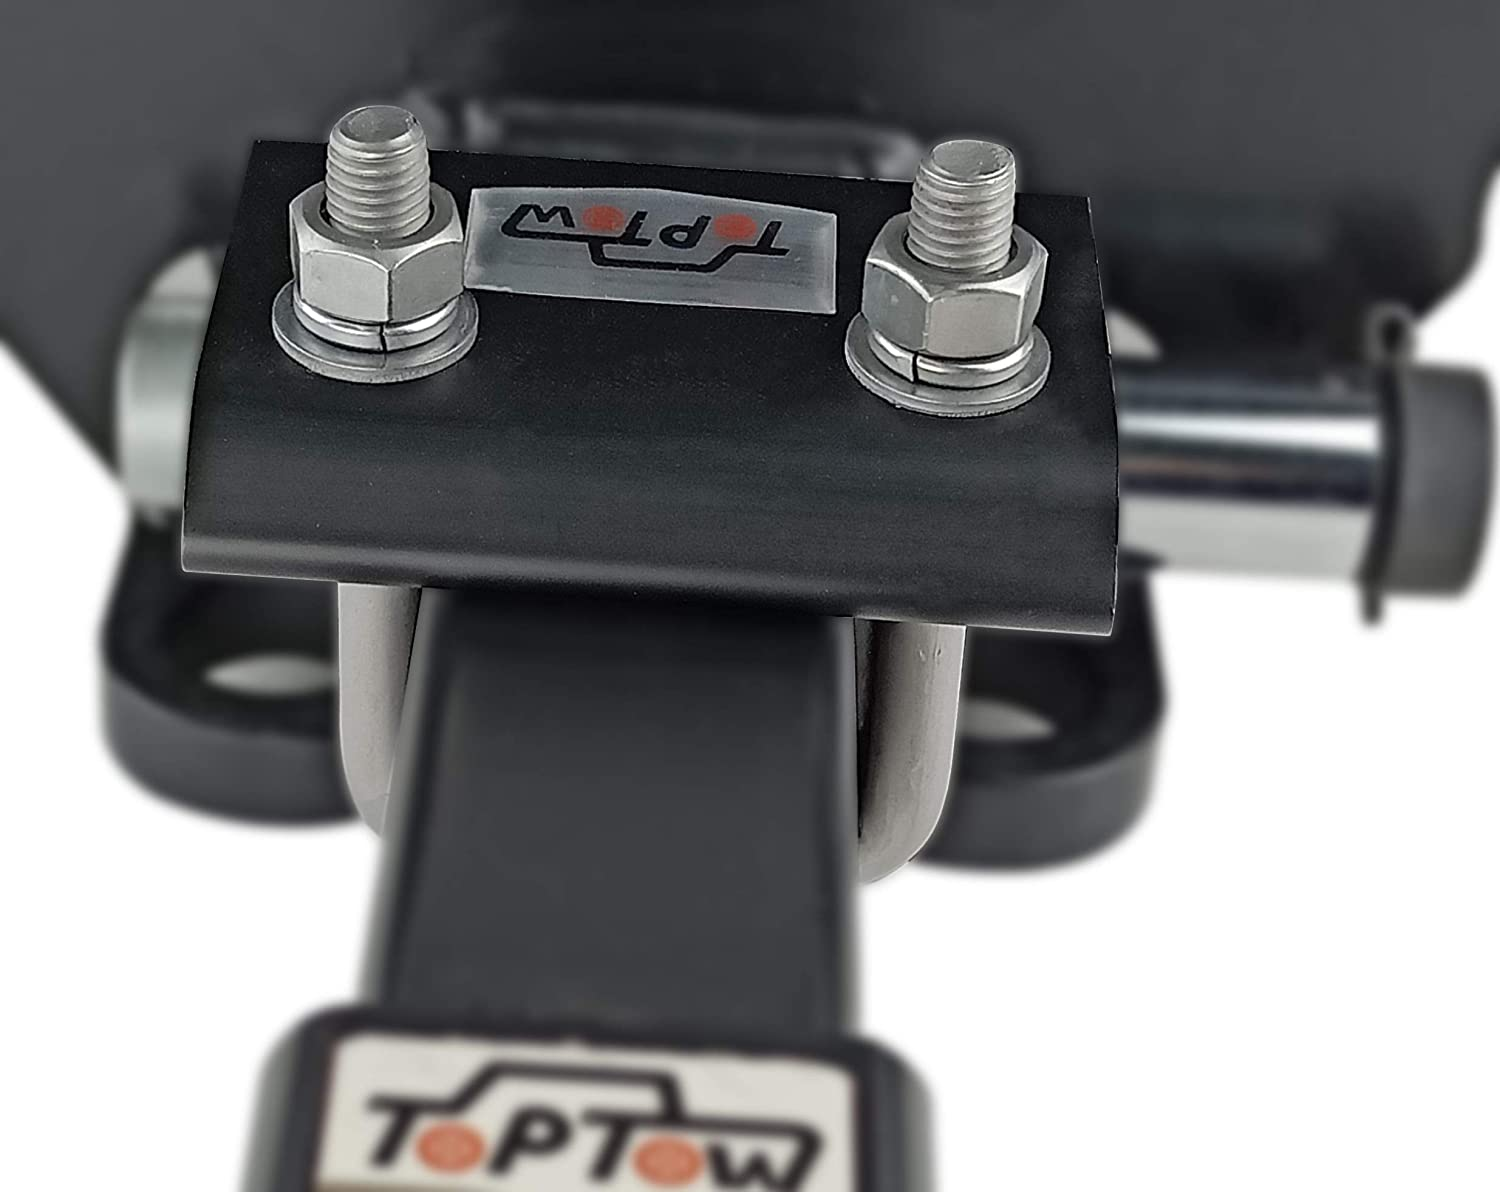 TOPTOW 64709 Trailer Hitch Tightener Anti Rattle Clamp for 1.25 Inch and 2 Inch Receiver Hitches 12 Packs Black Aluminum Stabilizer Plate